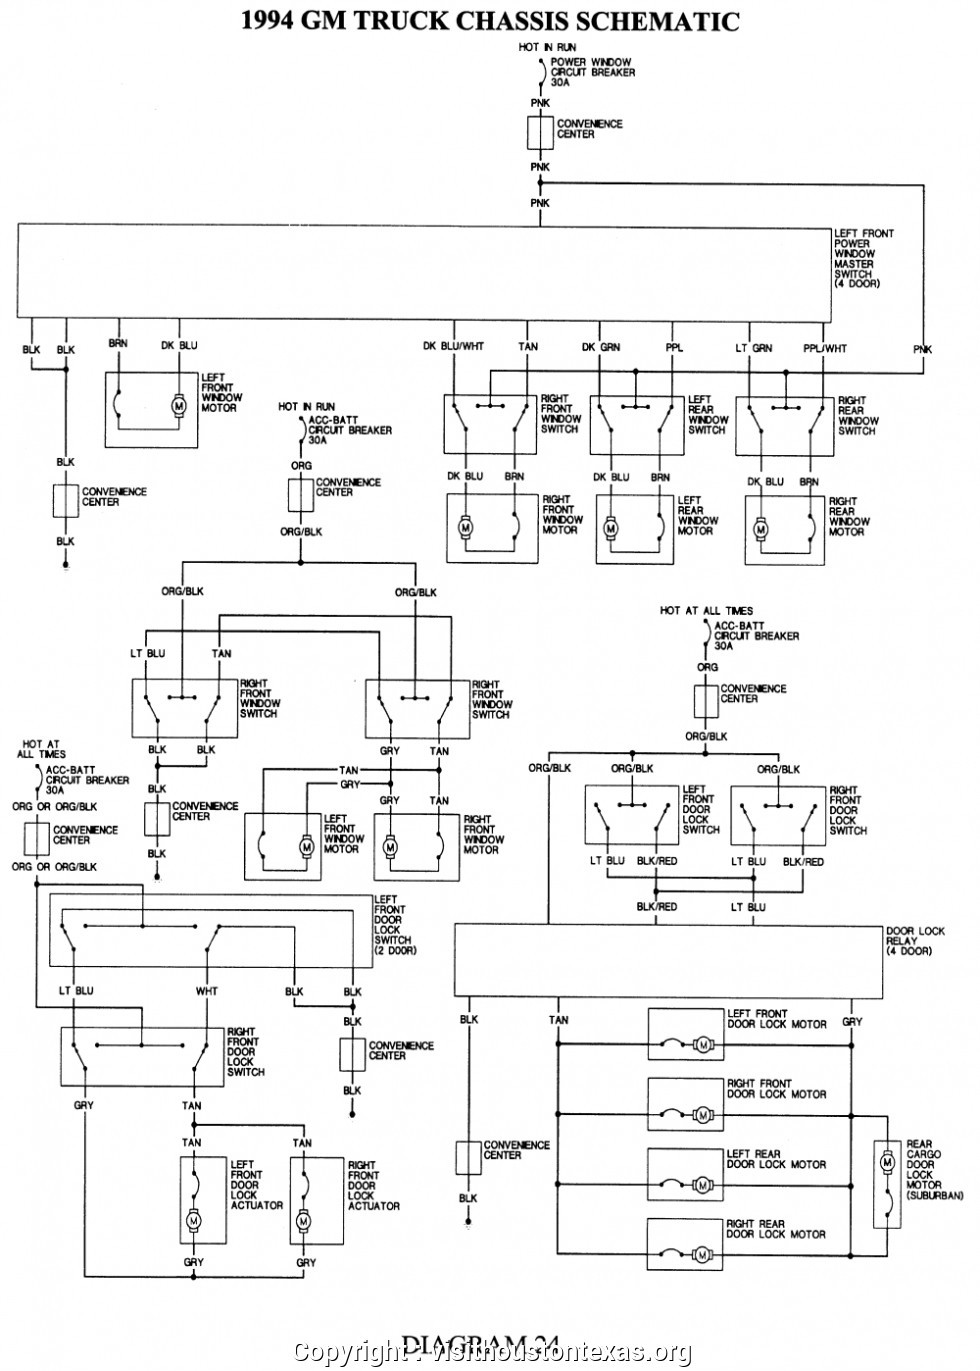 1993 chevy headlight wiring diagram - wiring diagram skip-foot -  skip-foot.zaafran.it  zaafran.it